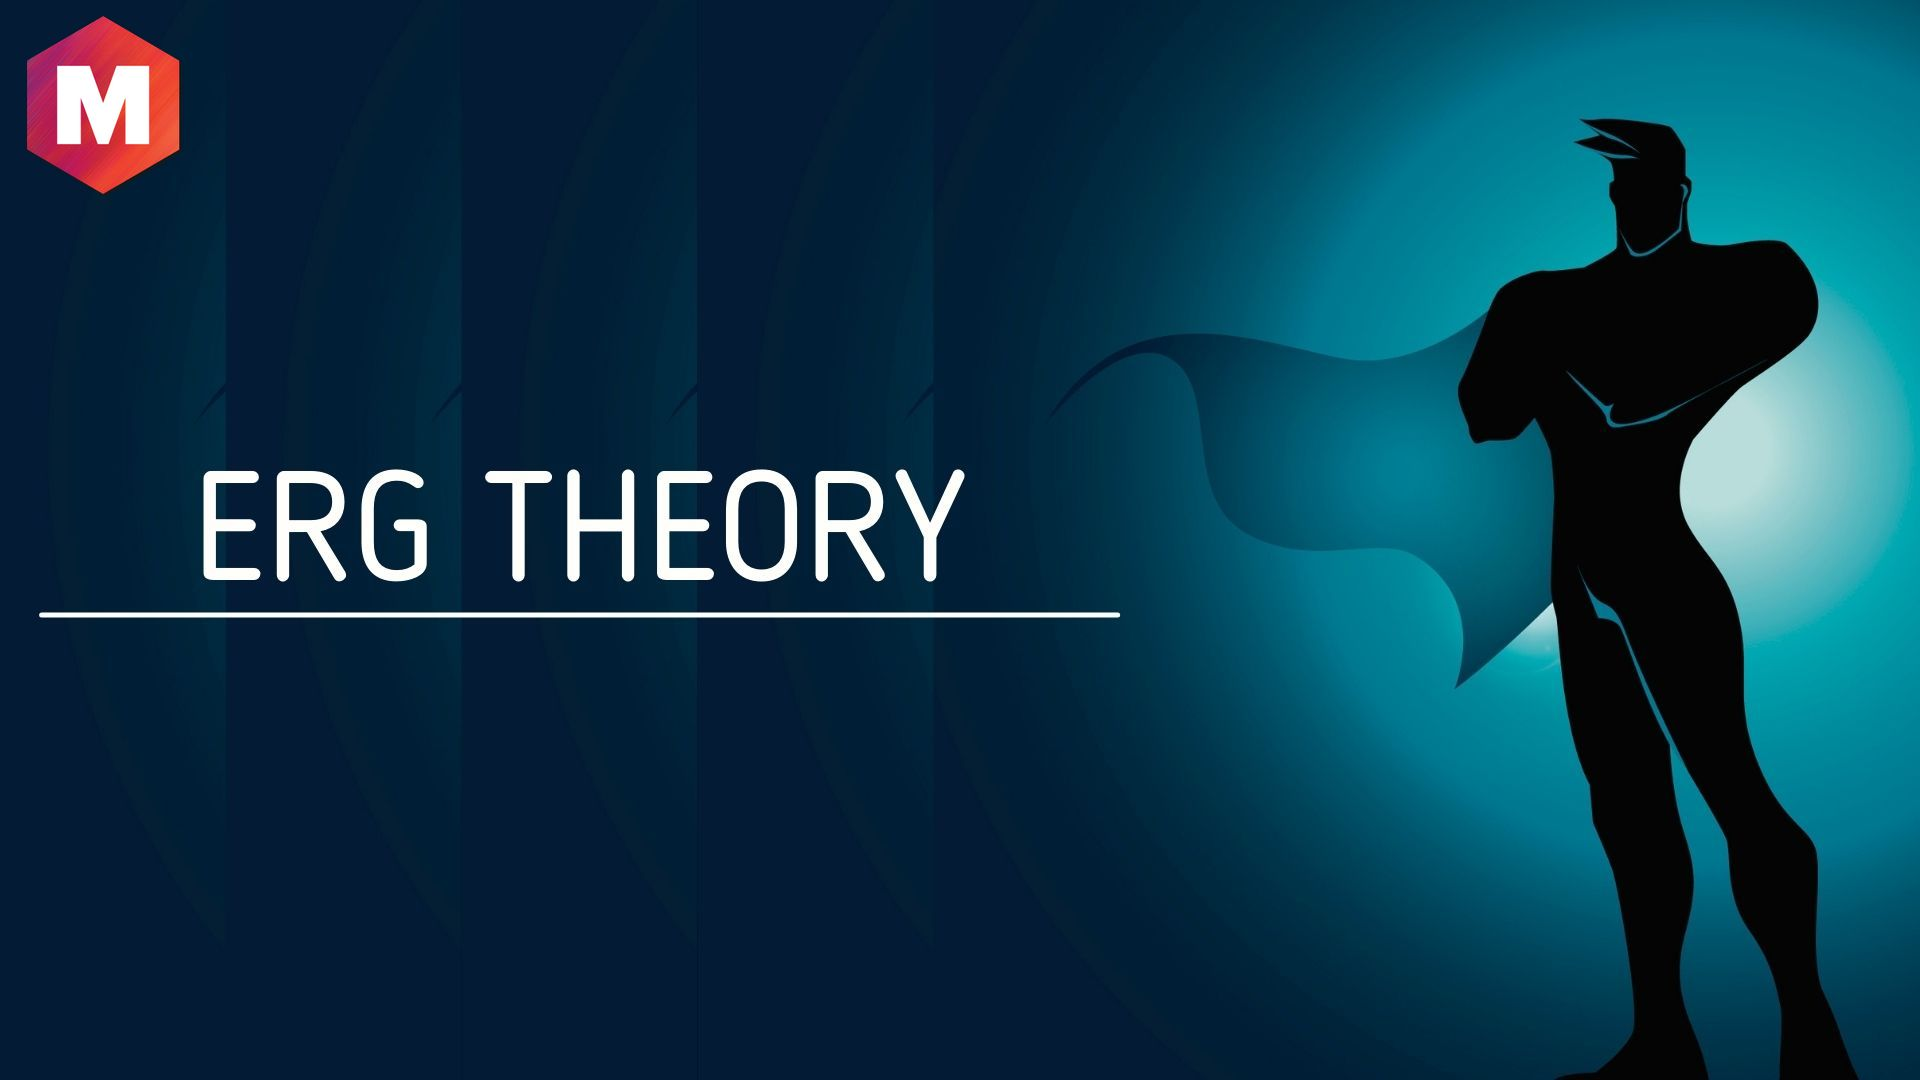 Managerial Implications of ERG Theory